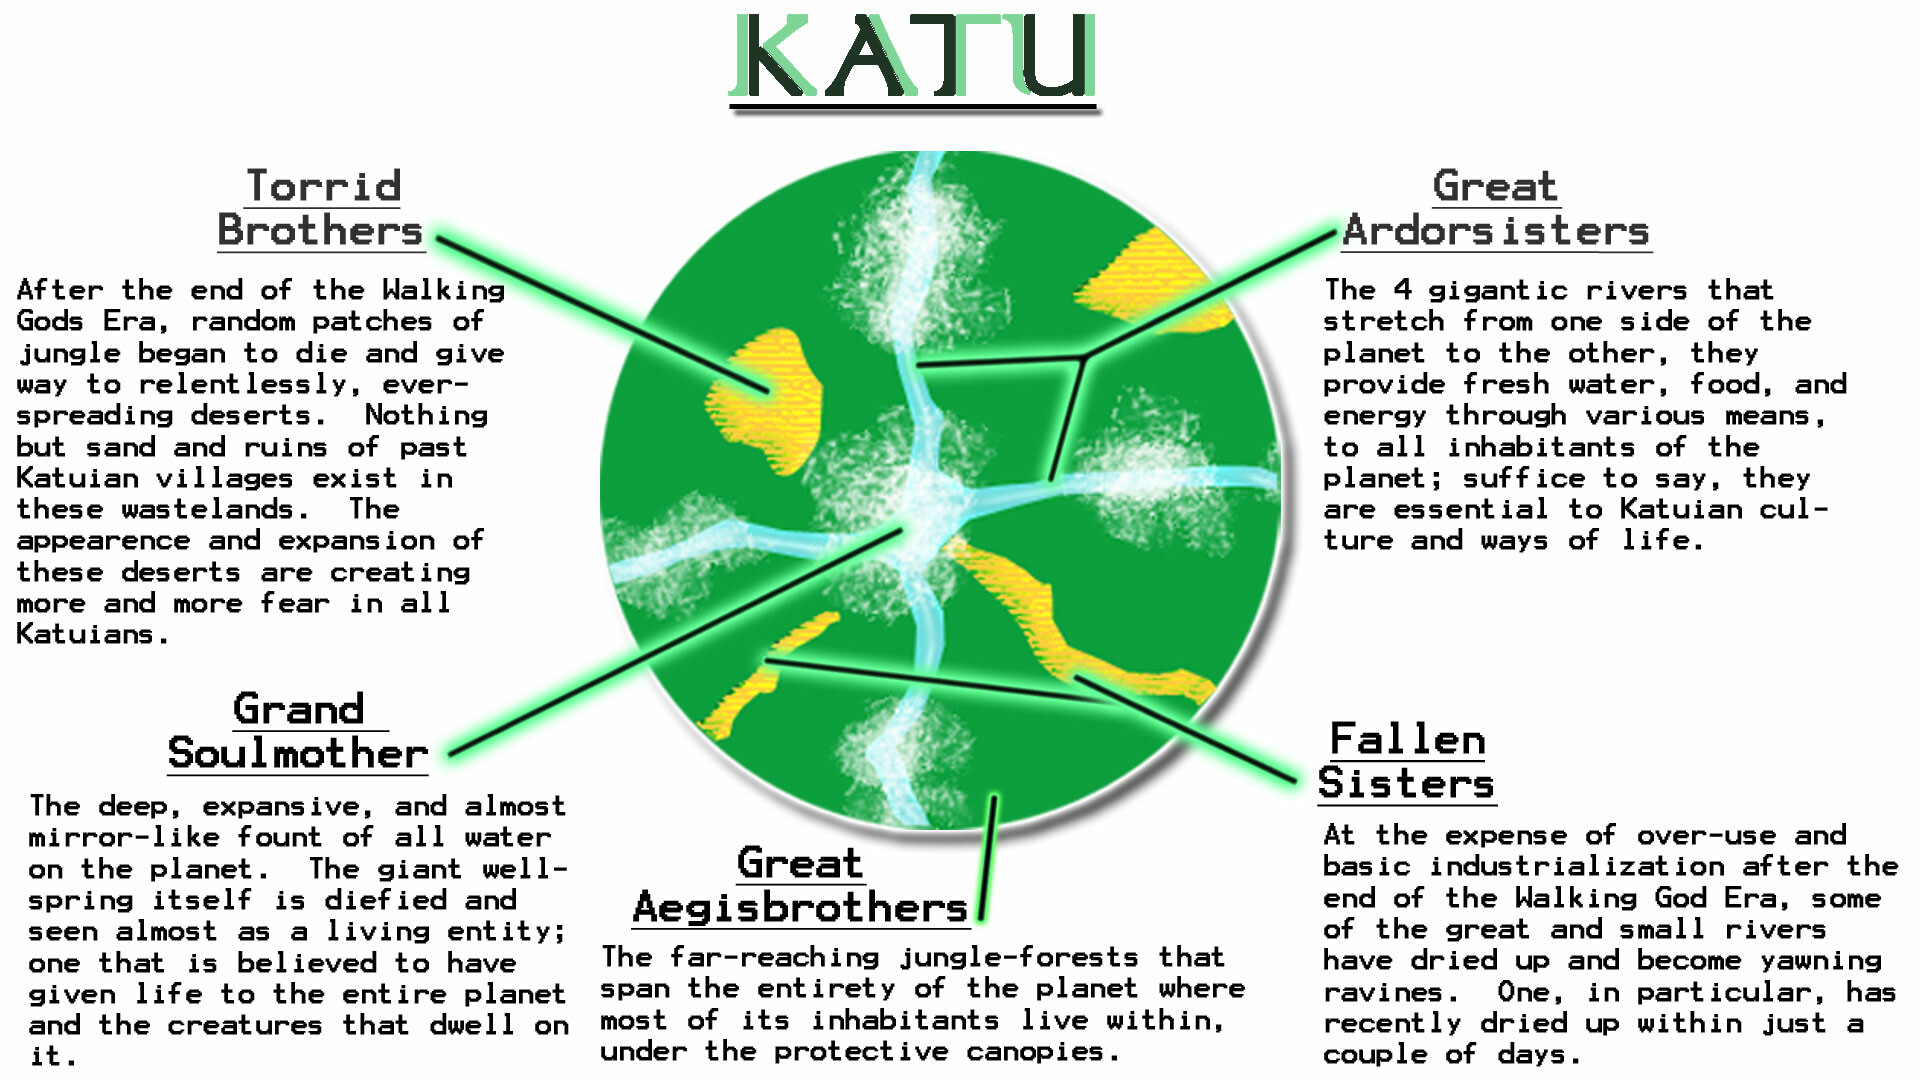 The original concepts for how Katu changes over time